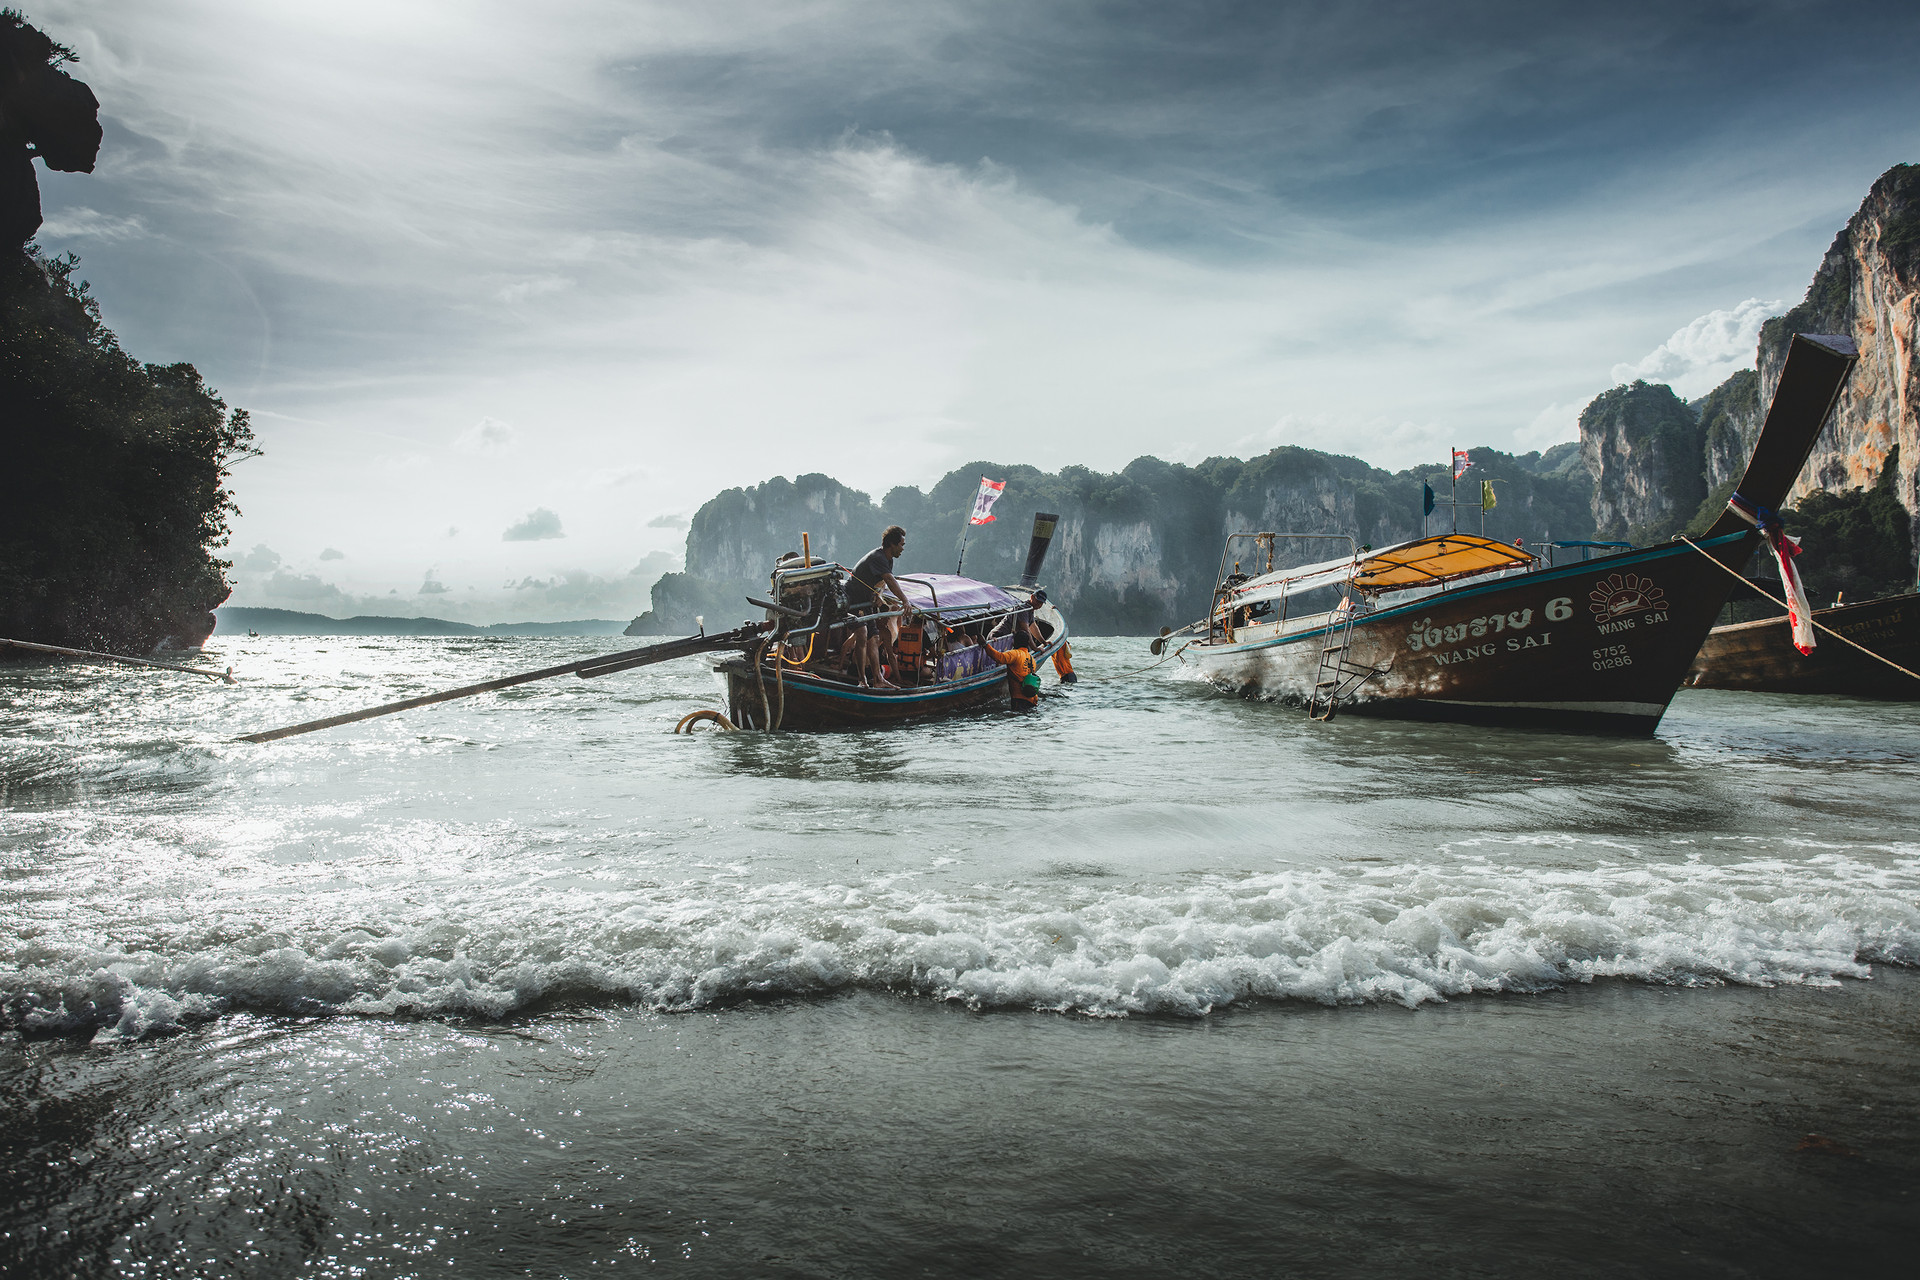 Railay longtail boats